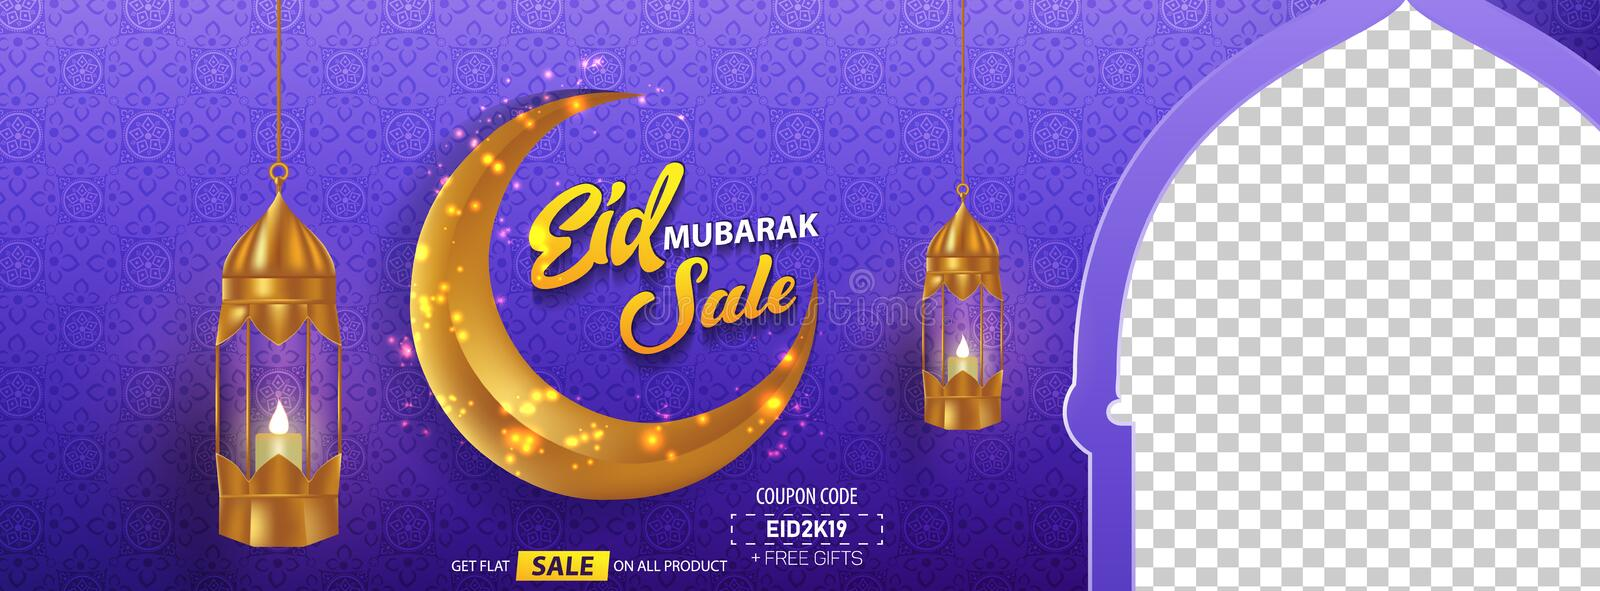 Härlig Eid Mubarak Sale Vector Banner Template design royaltyfri illustrationer